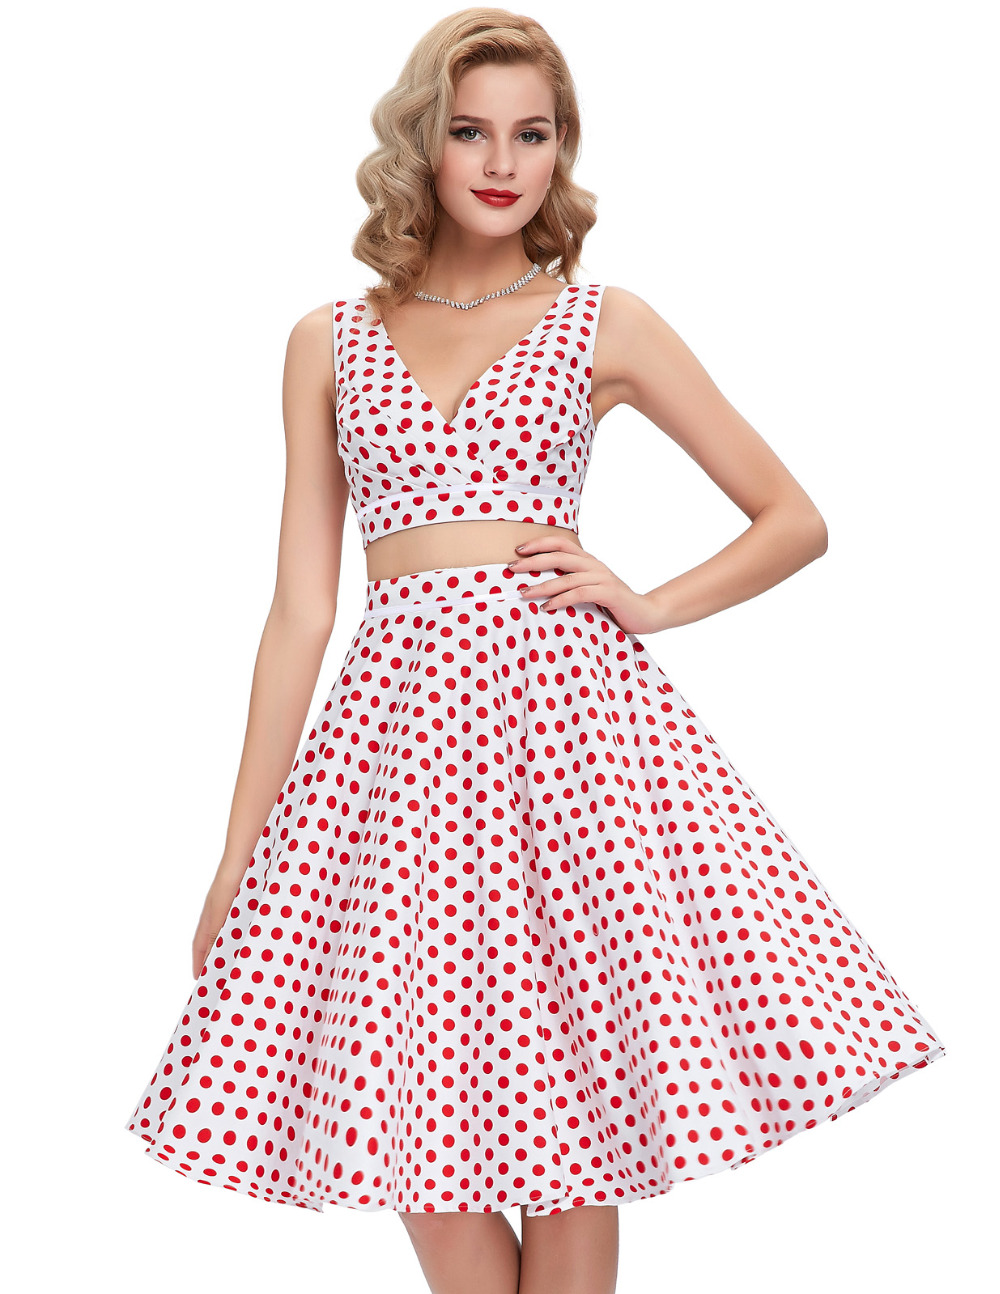 Buy Cheap 2016 Polka dots printed 60s 50s vintage dresses Robe Femme short swing 1950s Flared 2 Piece Set Women dress Two Piece outfits